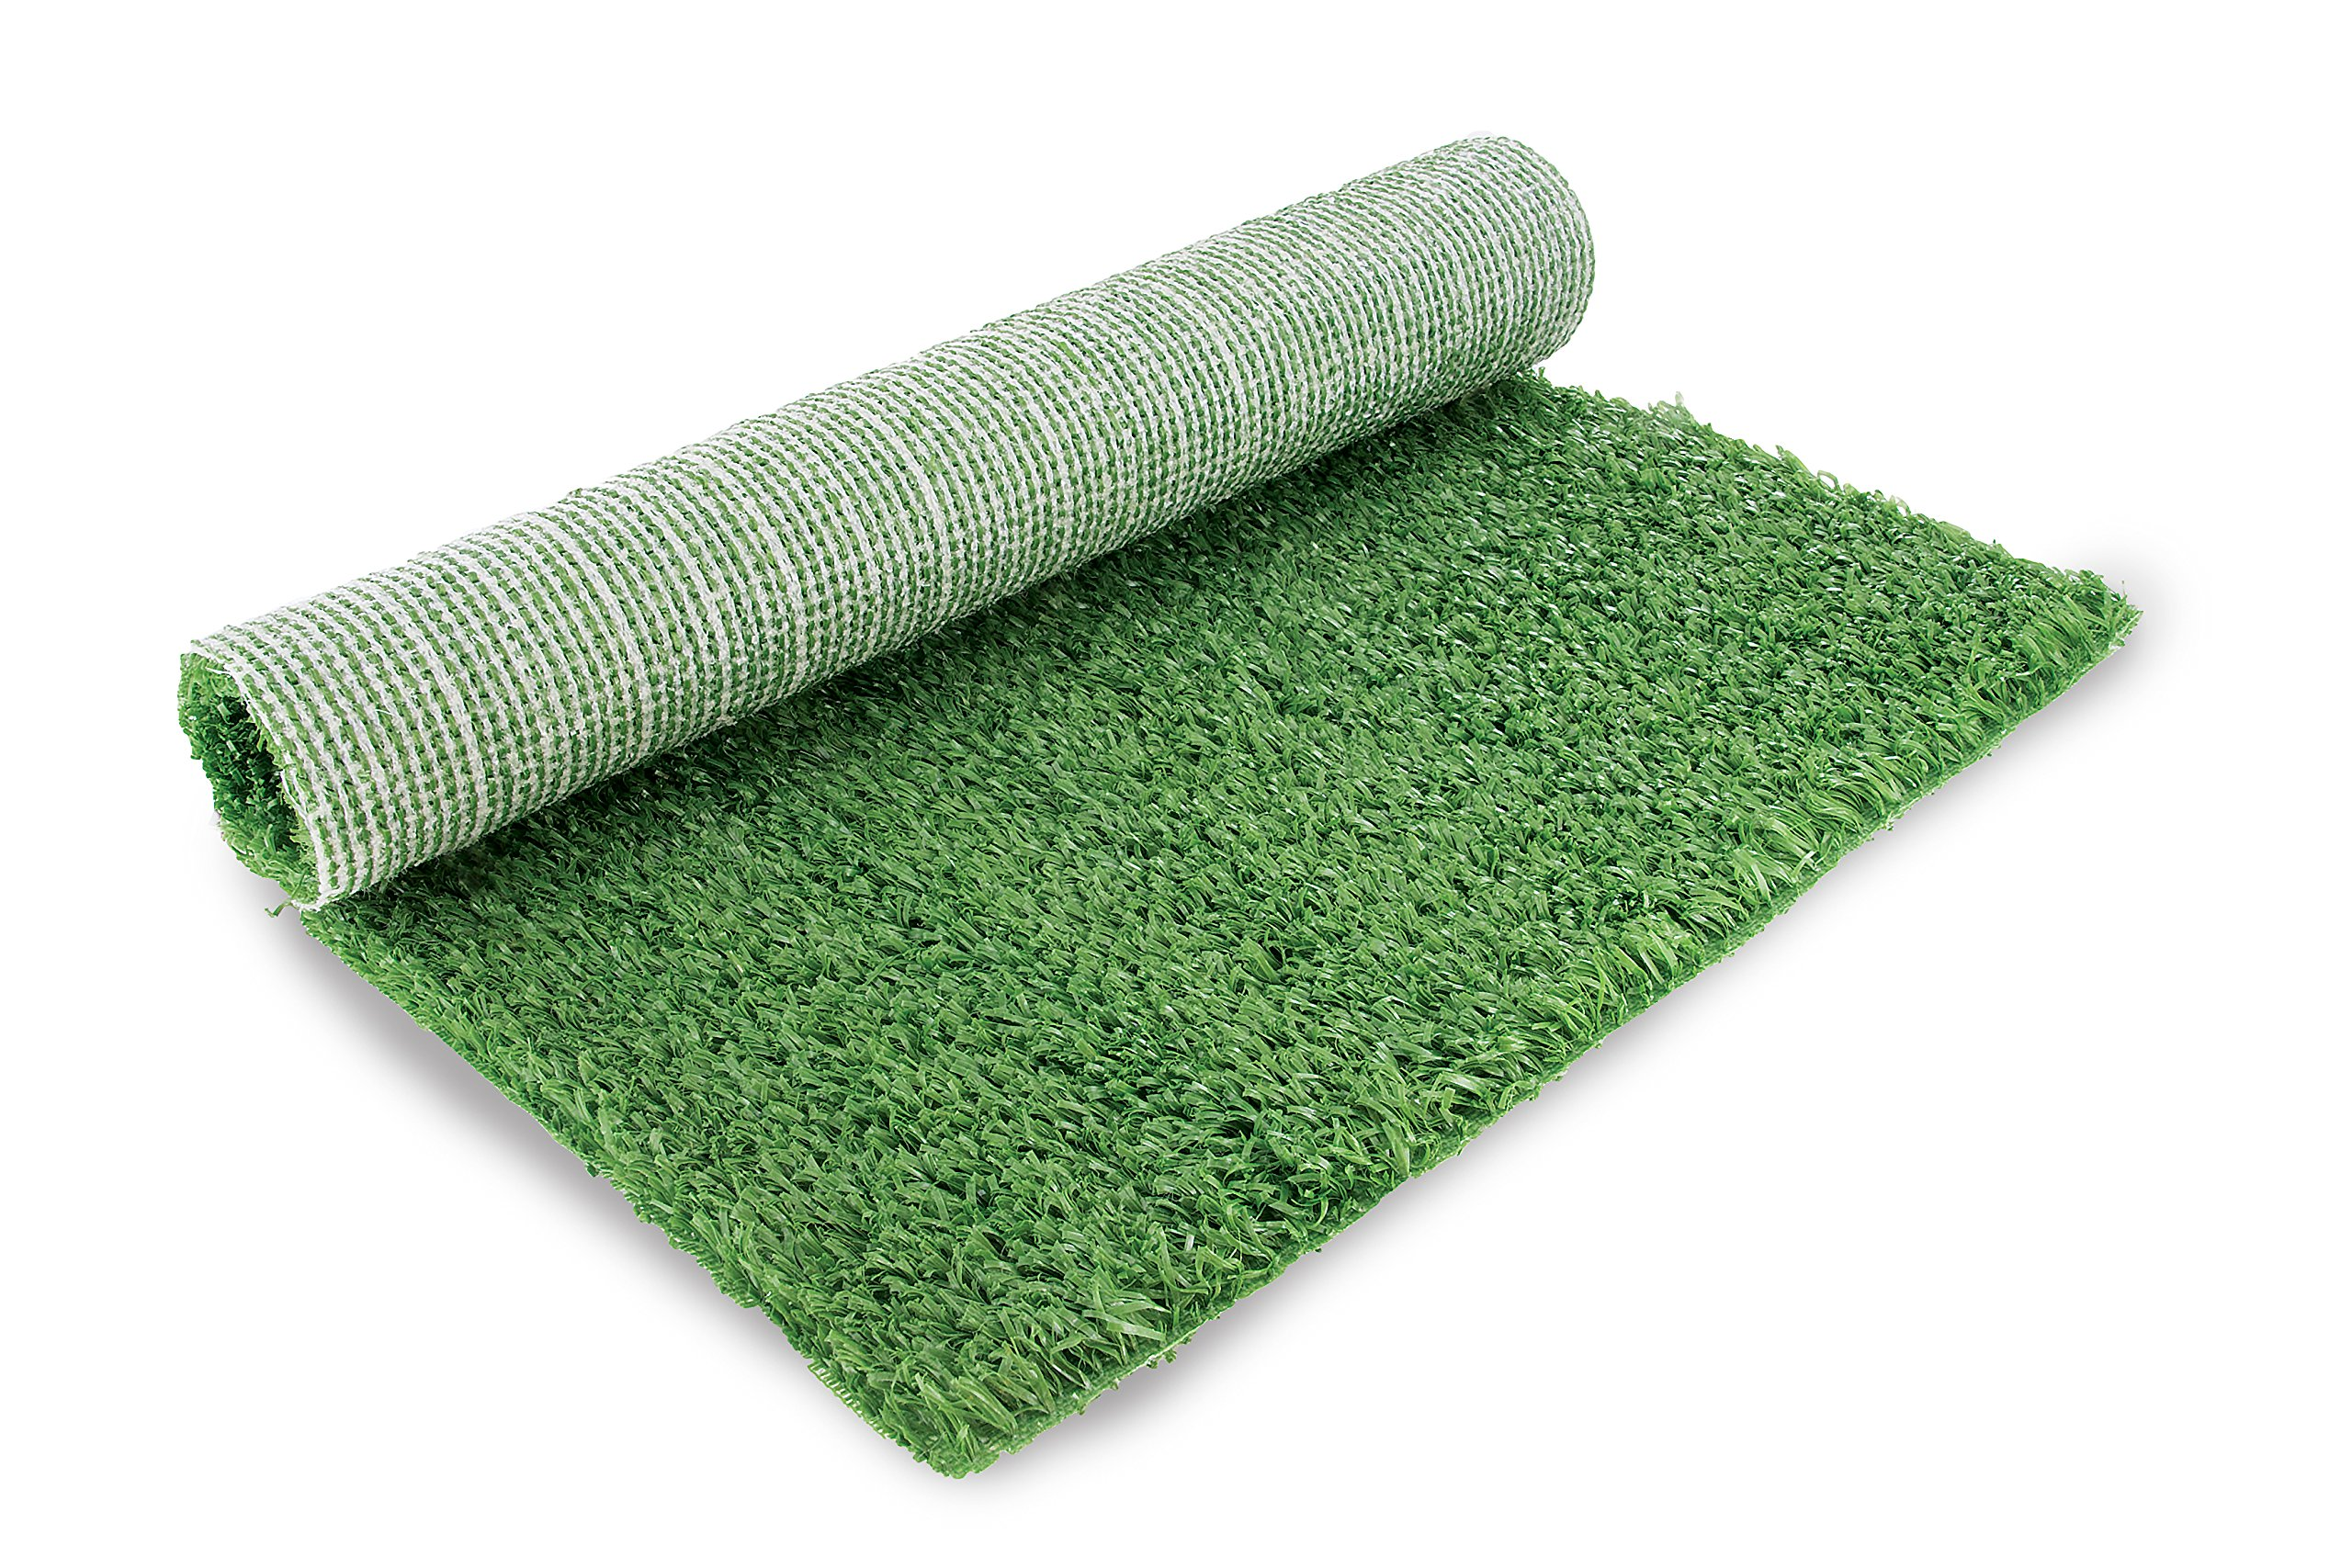 PetSafe Pet Loo Replacement Grass, Small, Natural Looking, Easy Clean by PetSafe